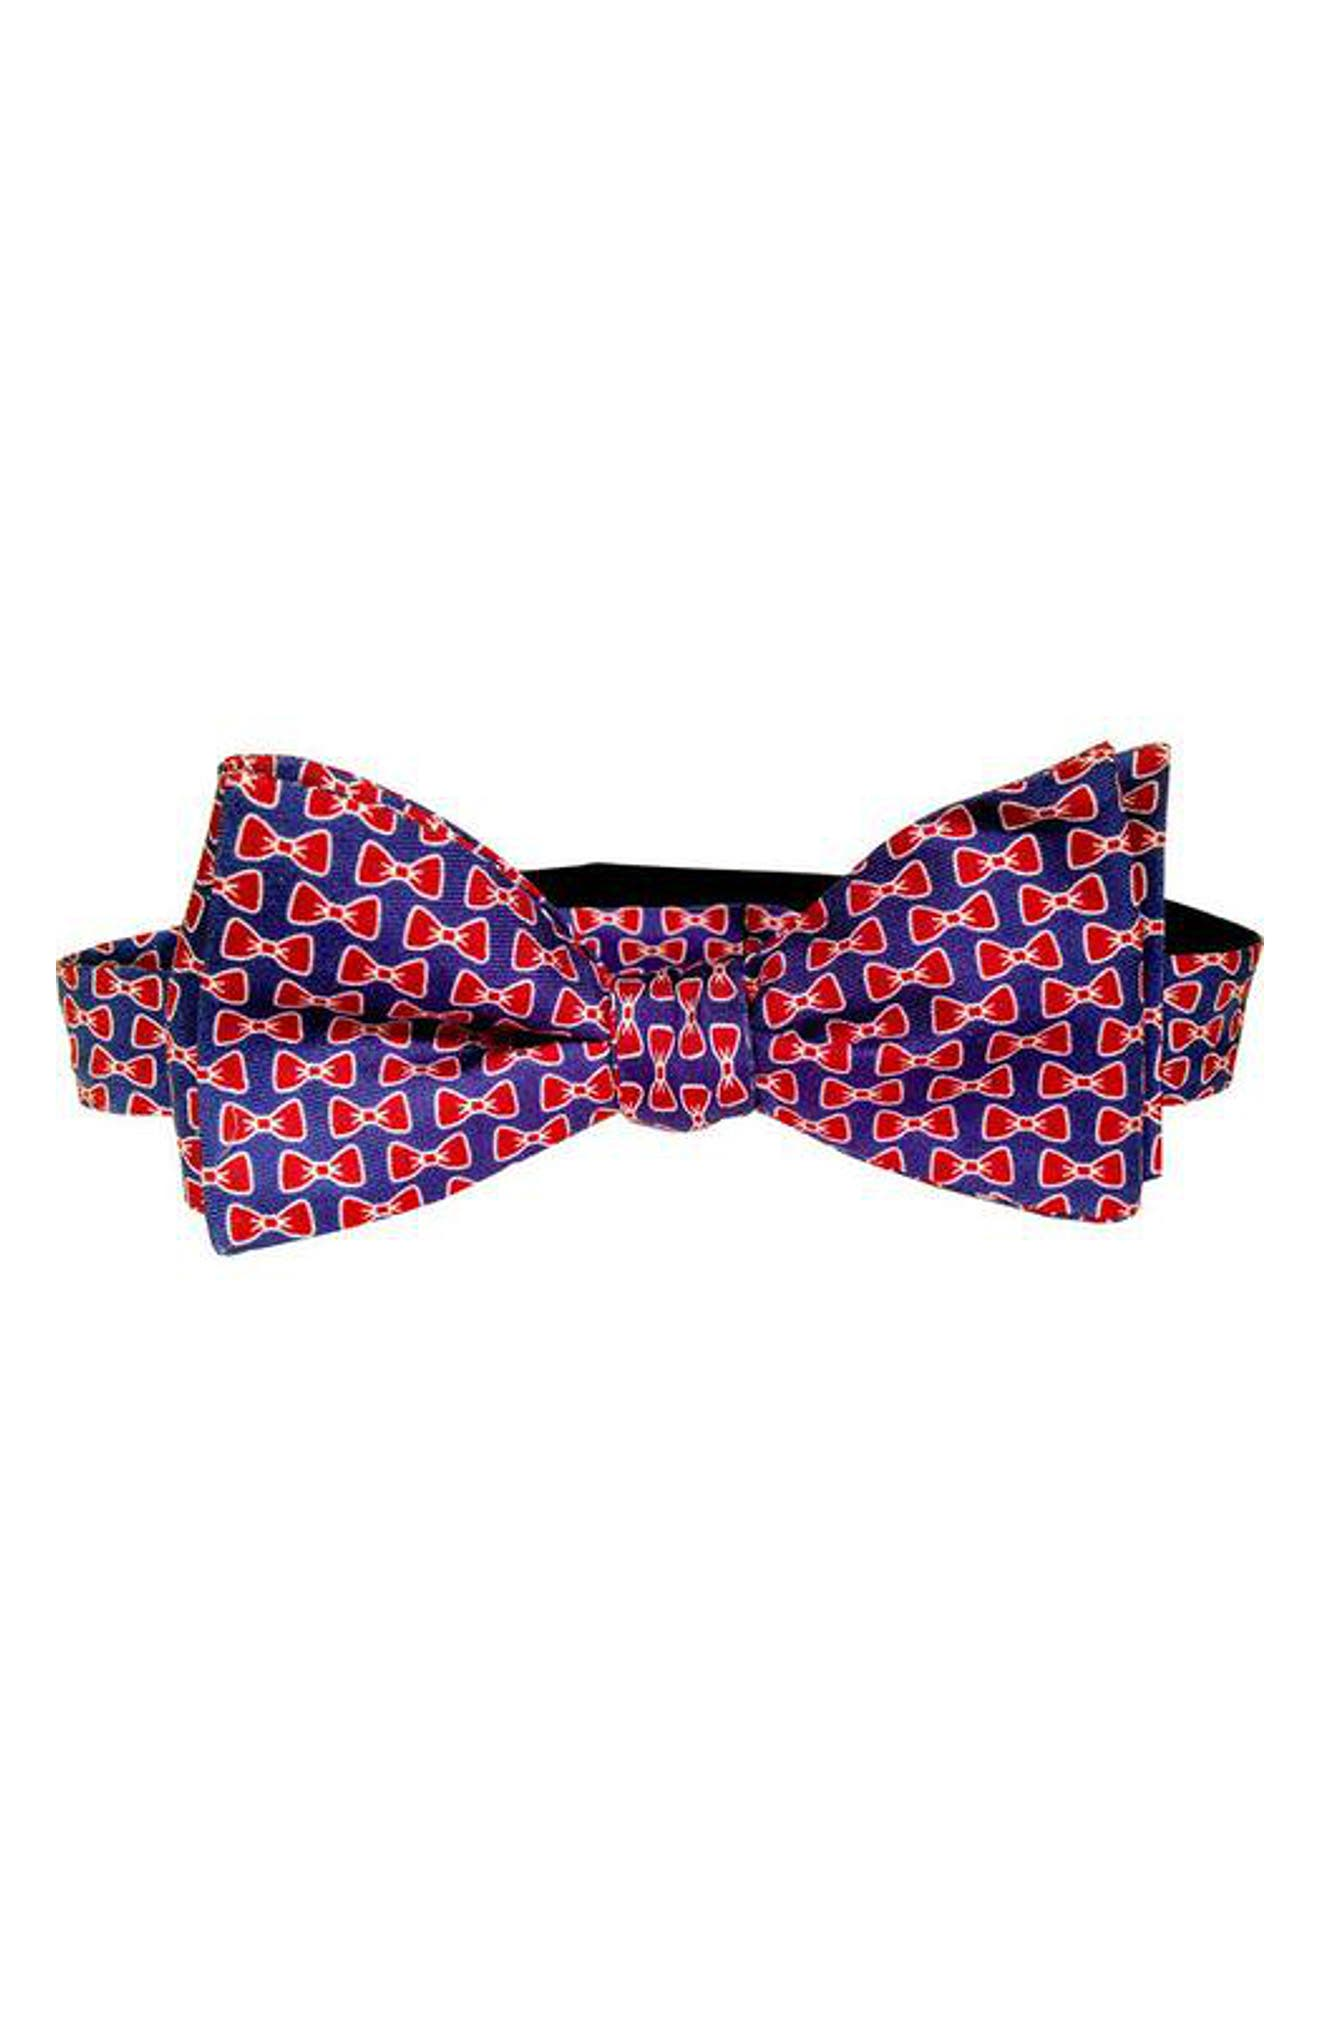 All Tied Up Silk Bow Tie,                             Main thumbnail 1, color,                             Navy